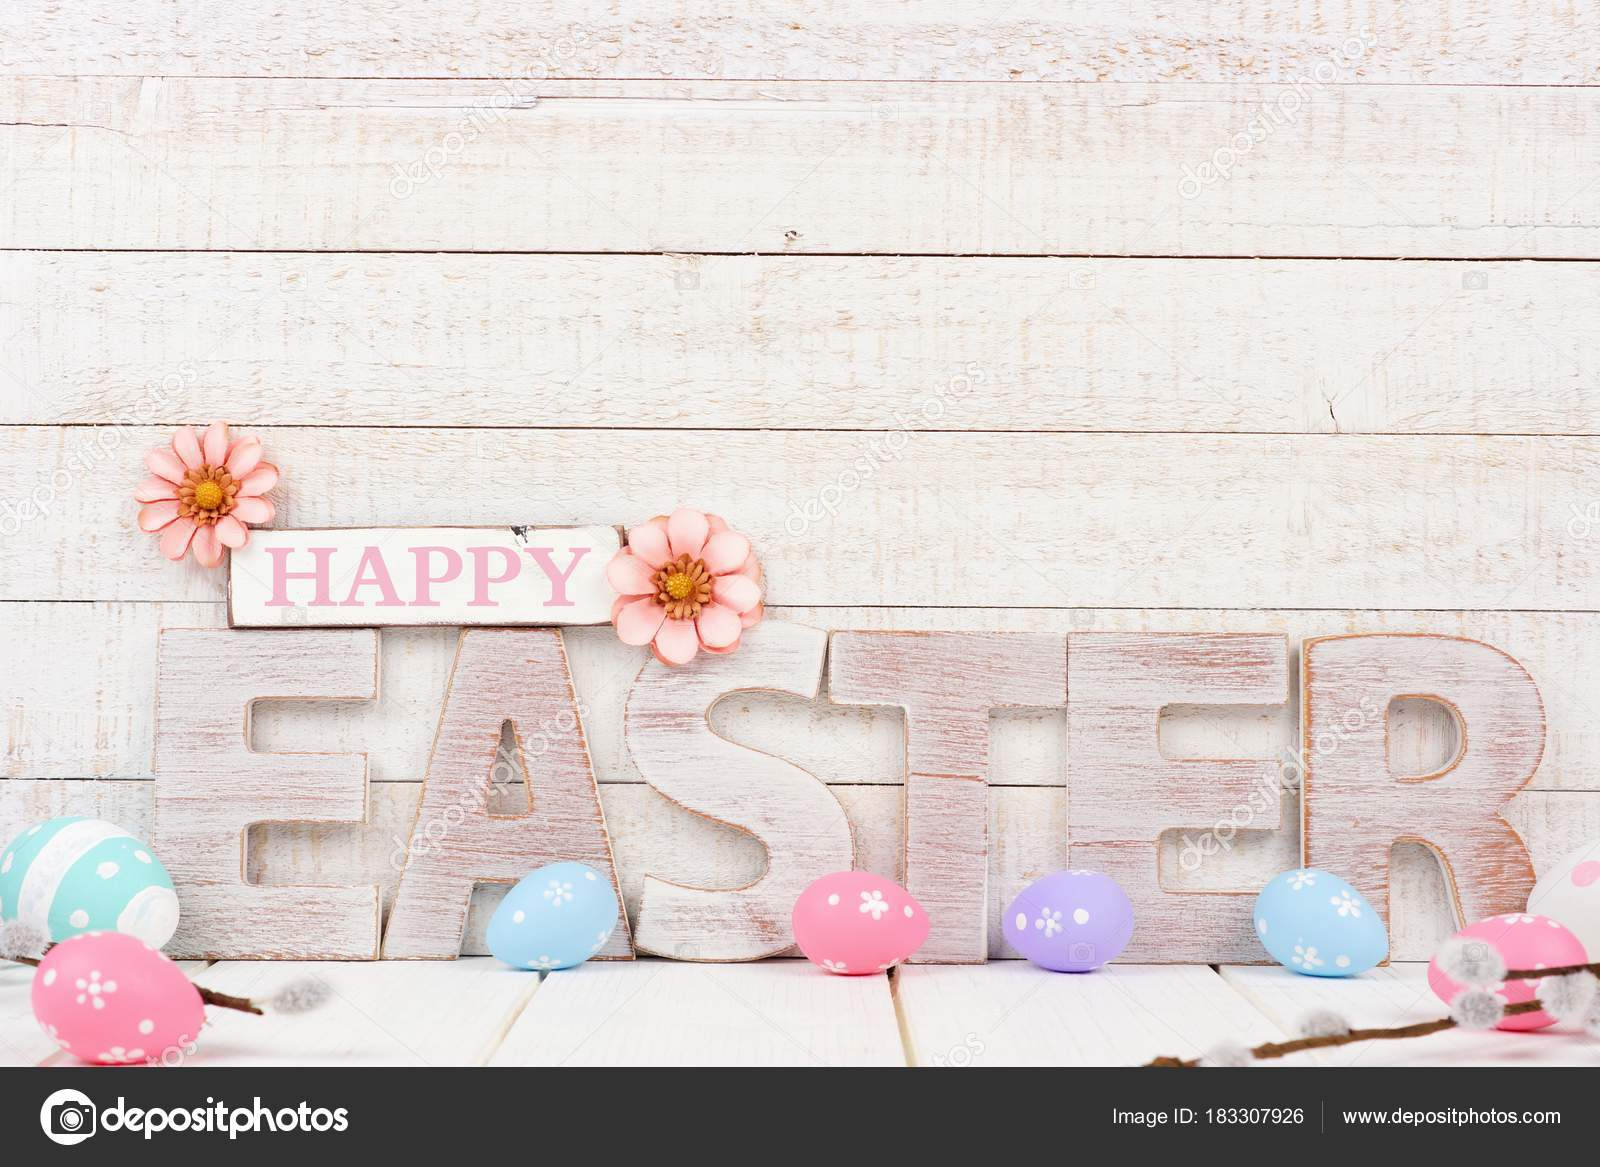 Happy Easter Spelled Rustic Wooden Letters Surrounding Easter Eggs